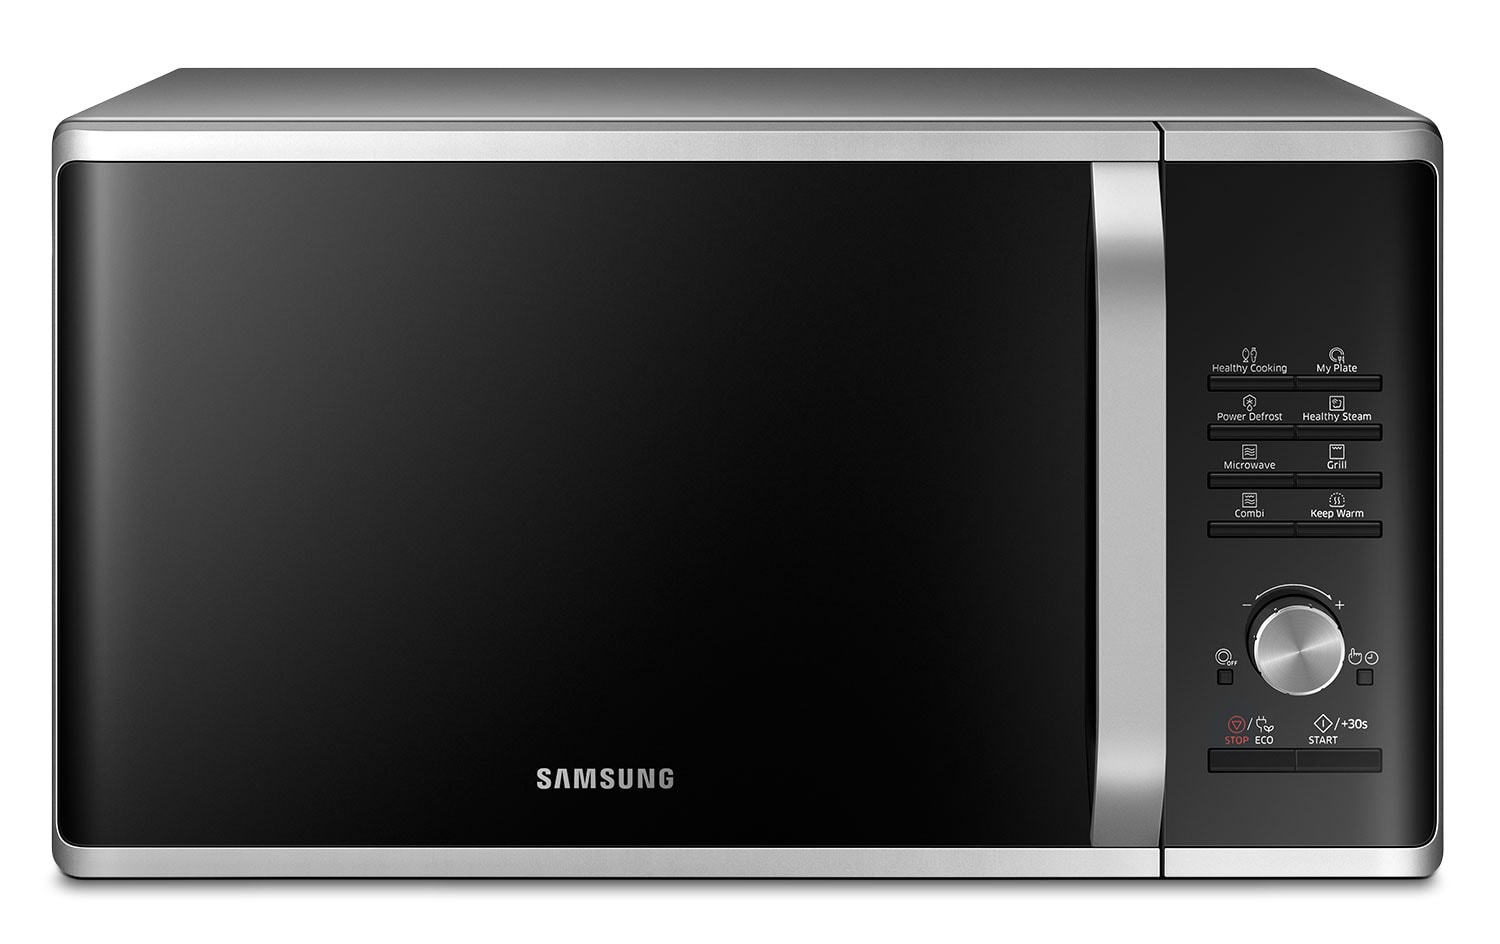 Samsung Solo 1 1 Cu Ft Countertop Microwave